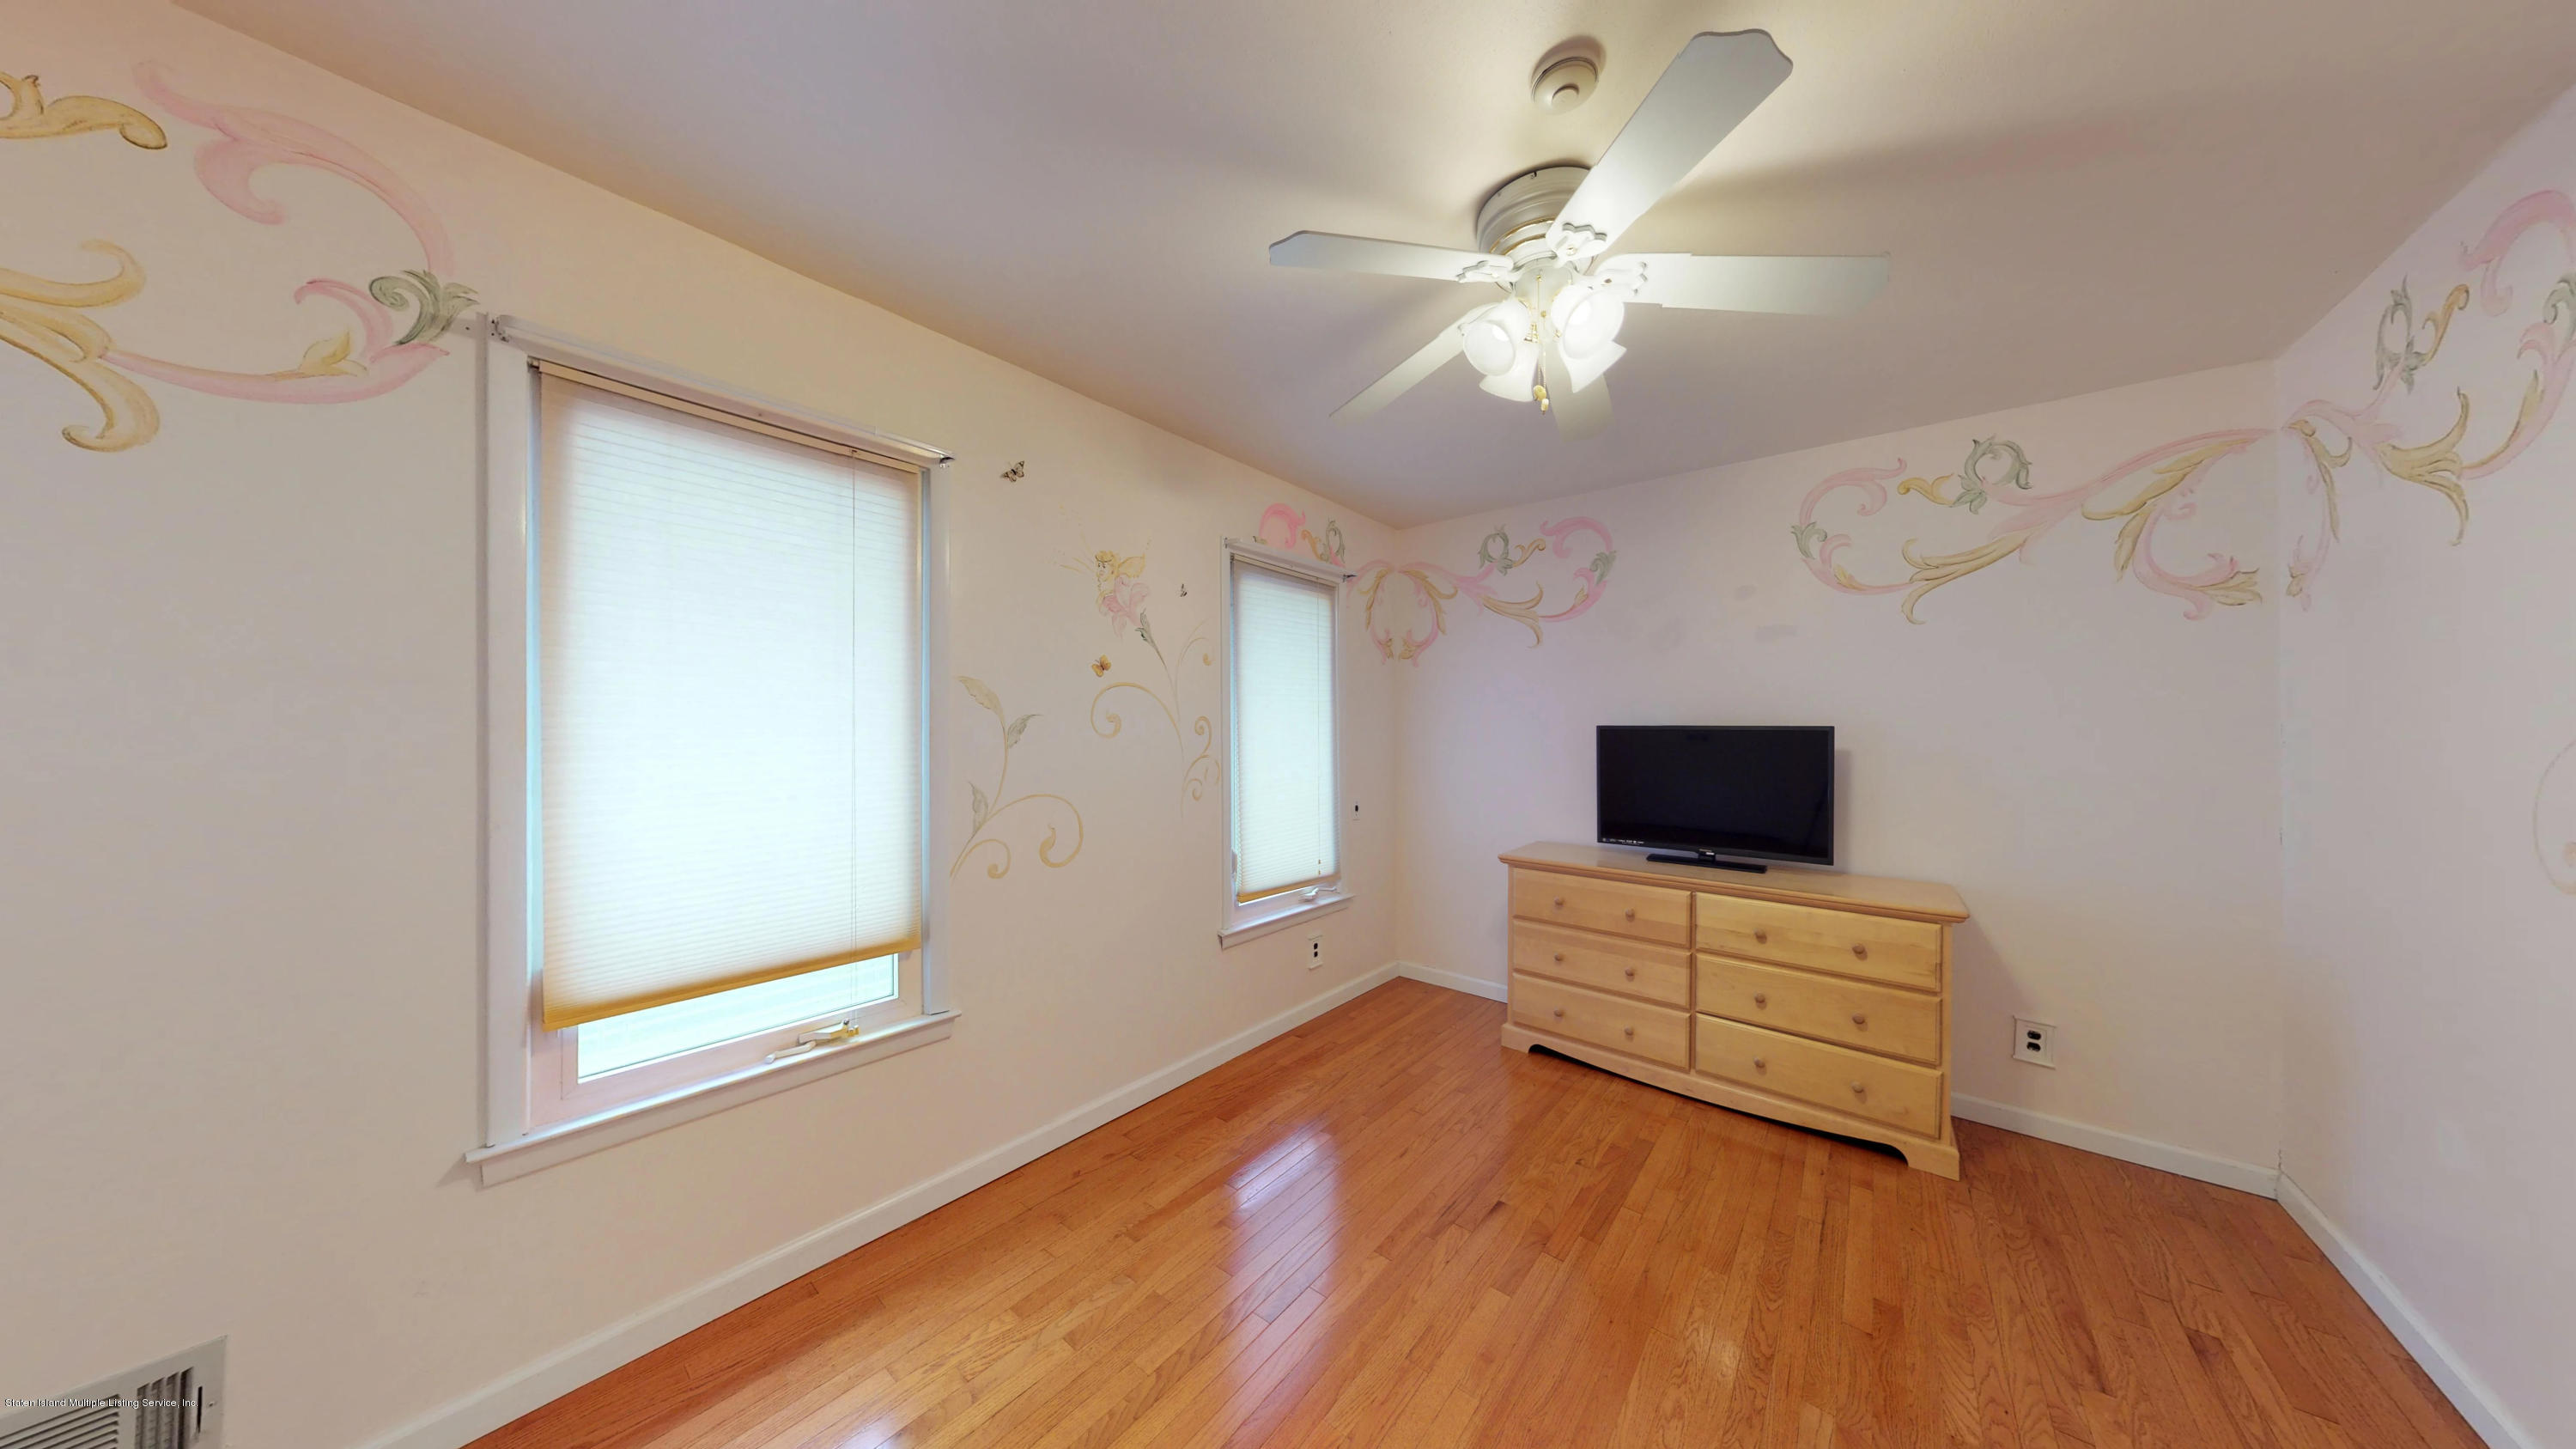 Single Family - Detached 8 Bland Place  Staten Island, NY 10312, MLS-1124910-35